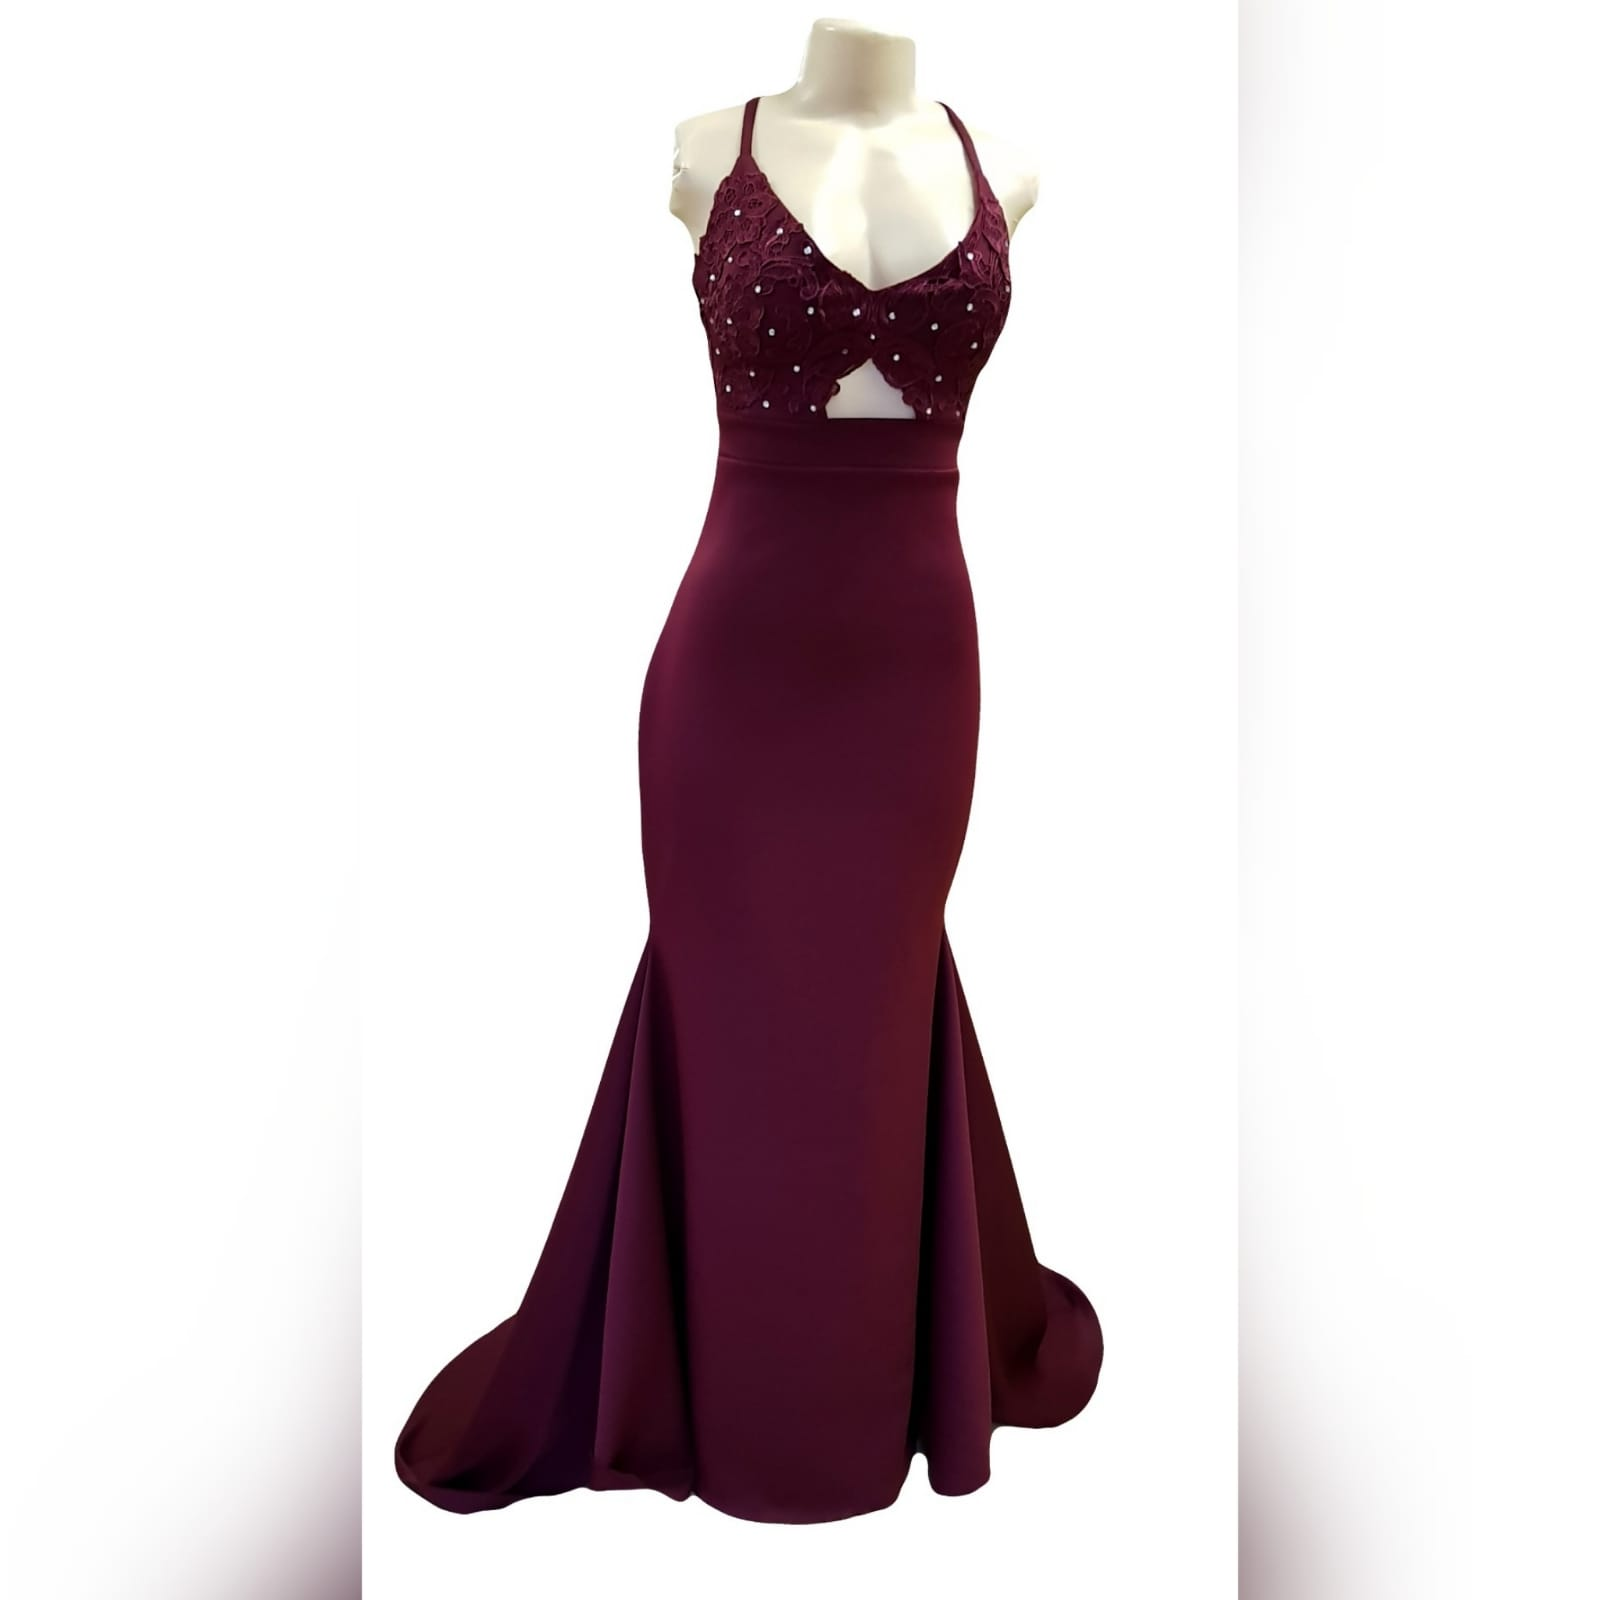 Burgundy soft mermaid plus size prom dress 7 burgundy soft mermaid plus size prom dress. Bodice detailed with lace and silver beads, small triangle opening on the waist with waistband finish. Open laceup back and a train.